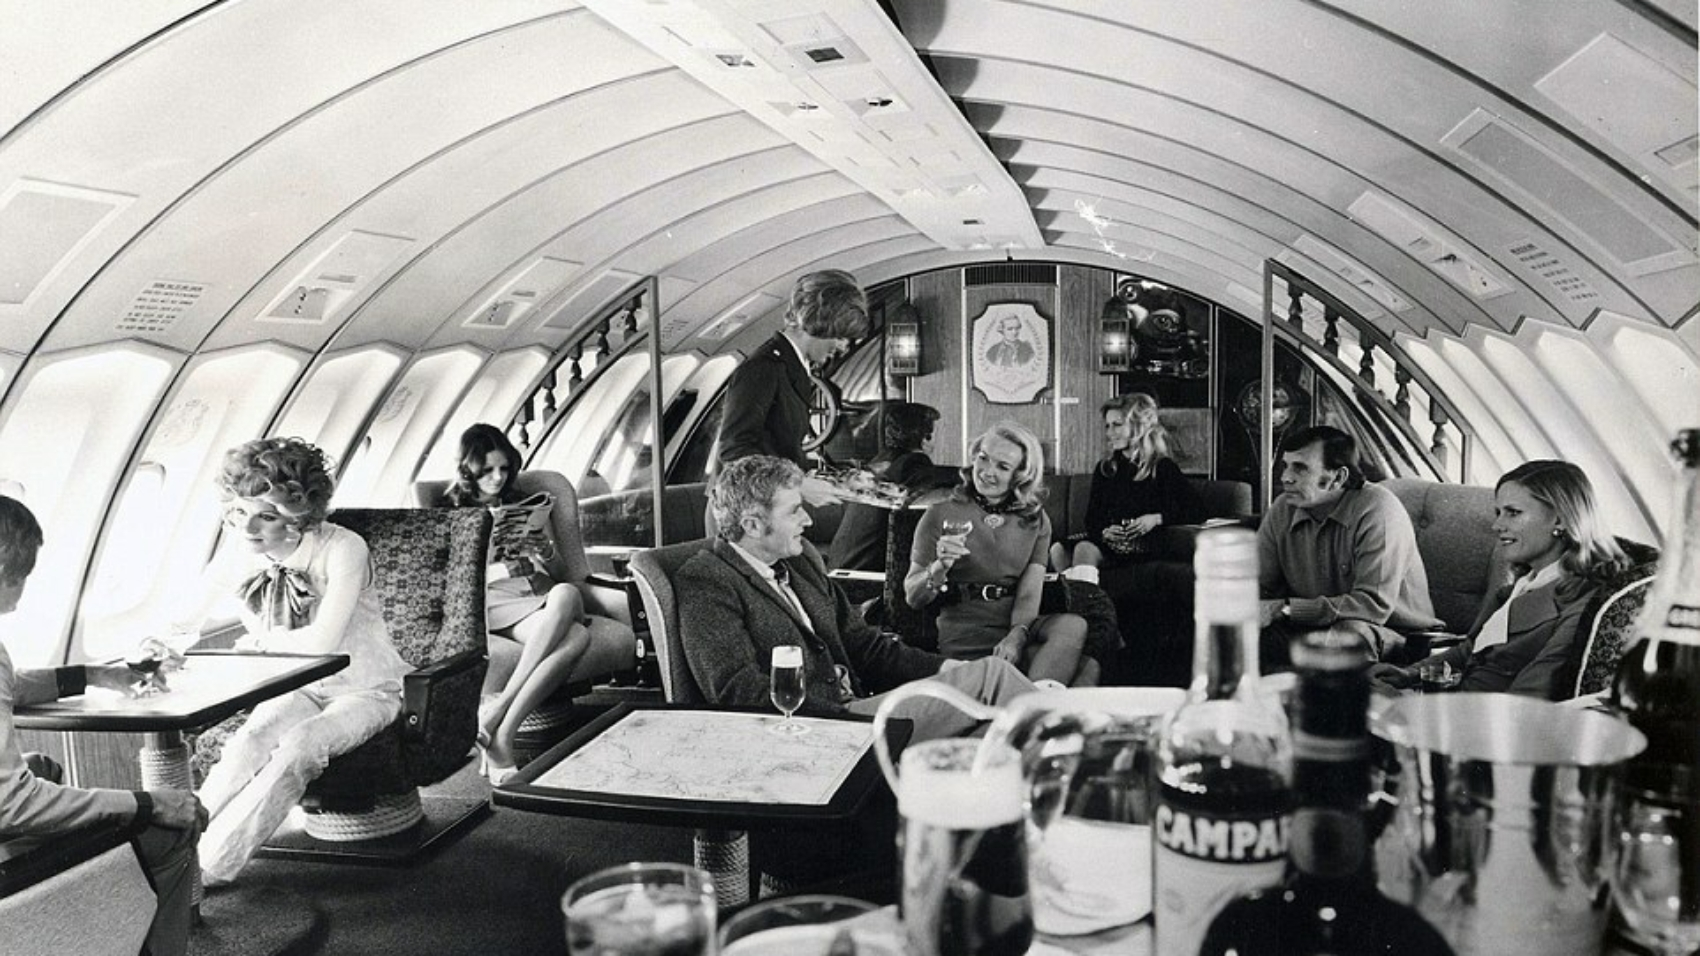 34CEA68100000578-3622956-The_first_class_upper_deck_lounge_of_a_Boeing_747_in_1971_shows_-a-3_1464945787267